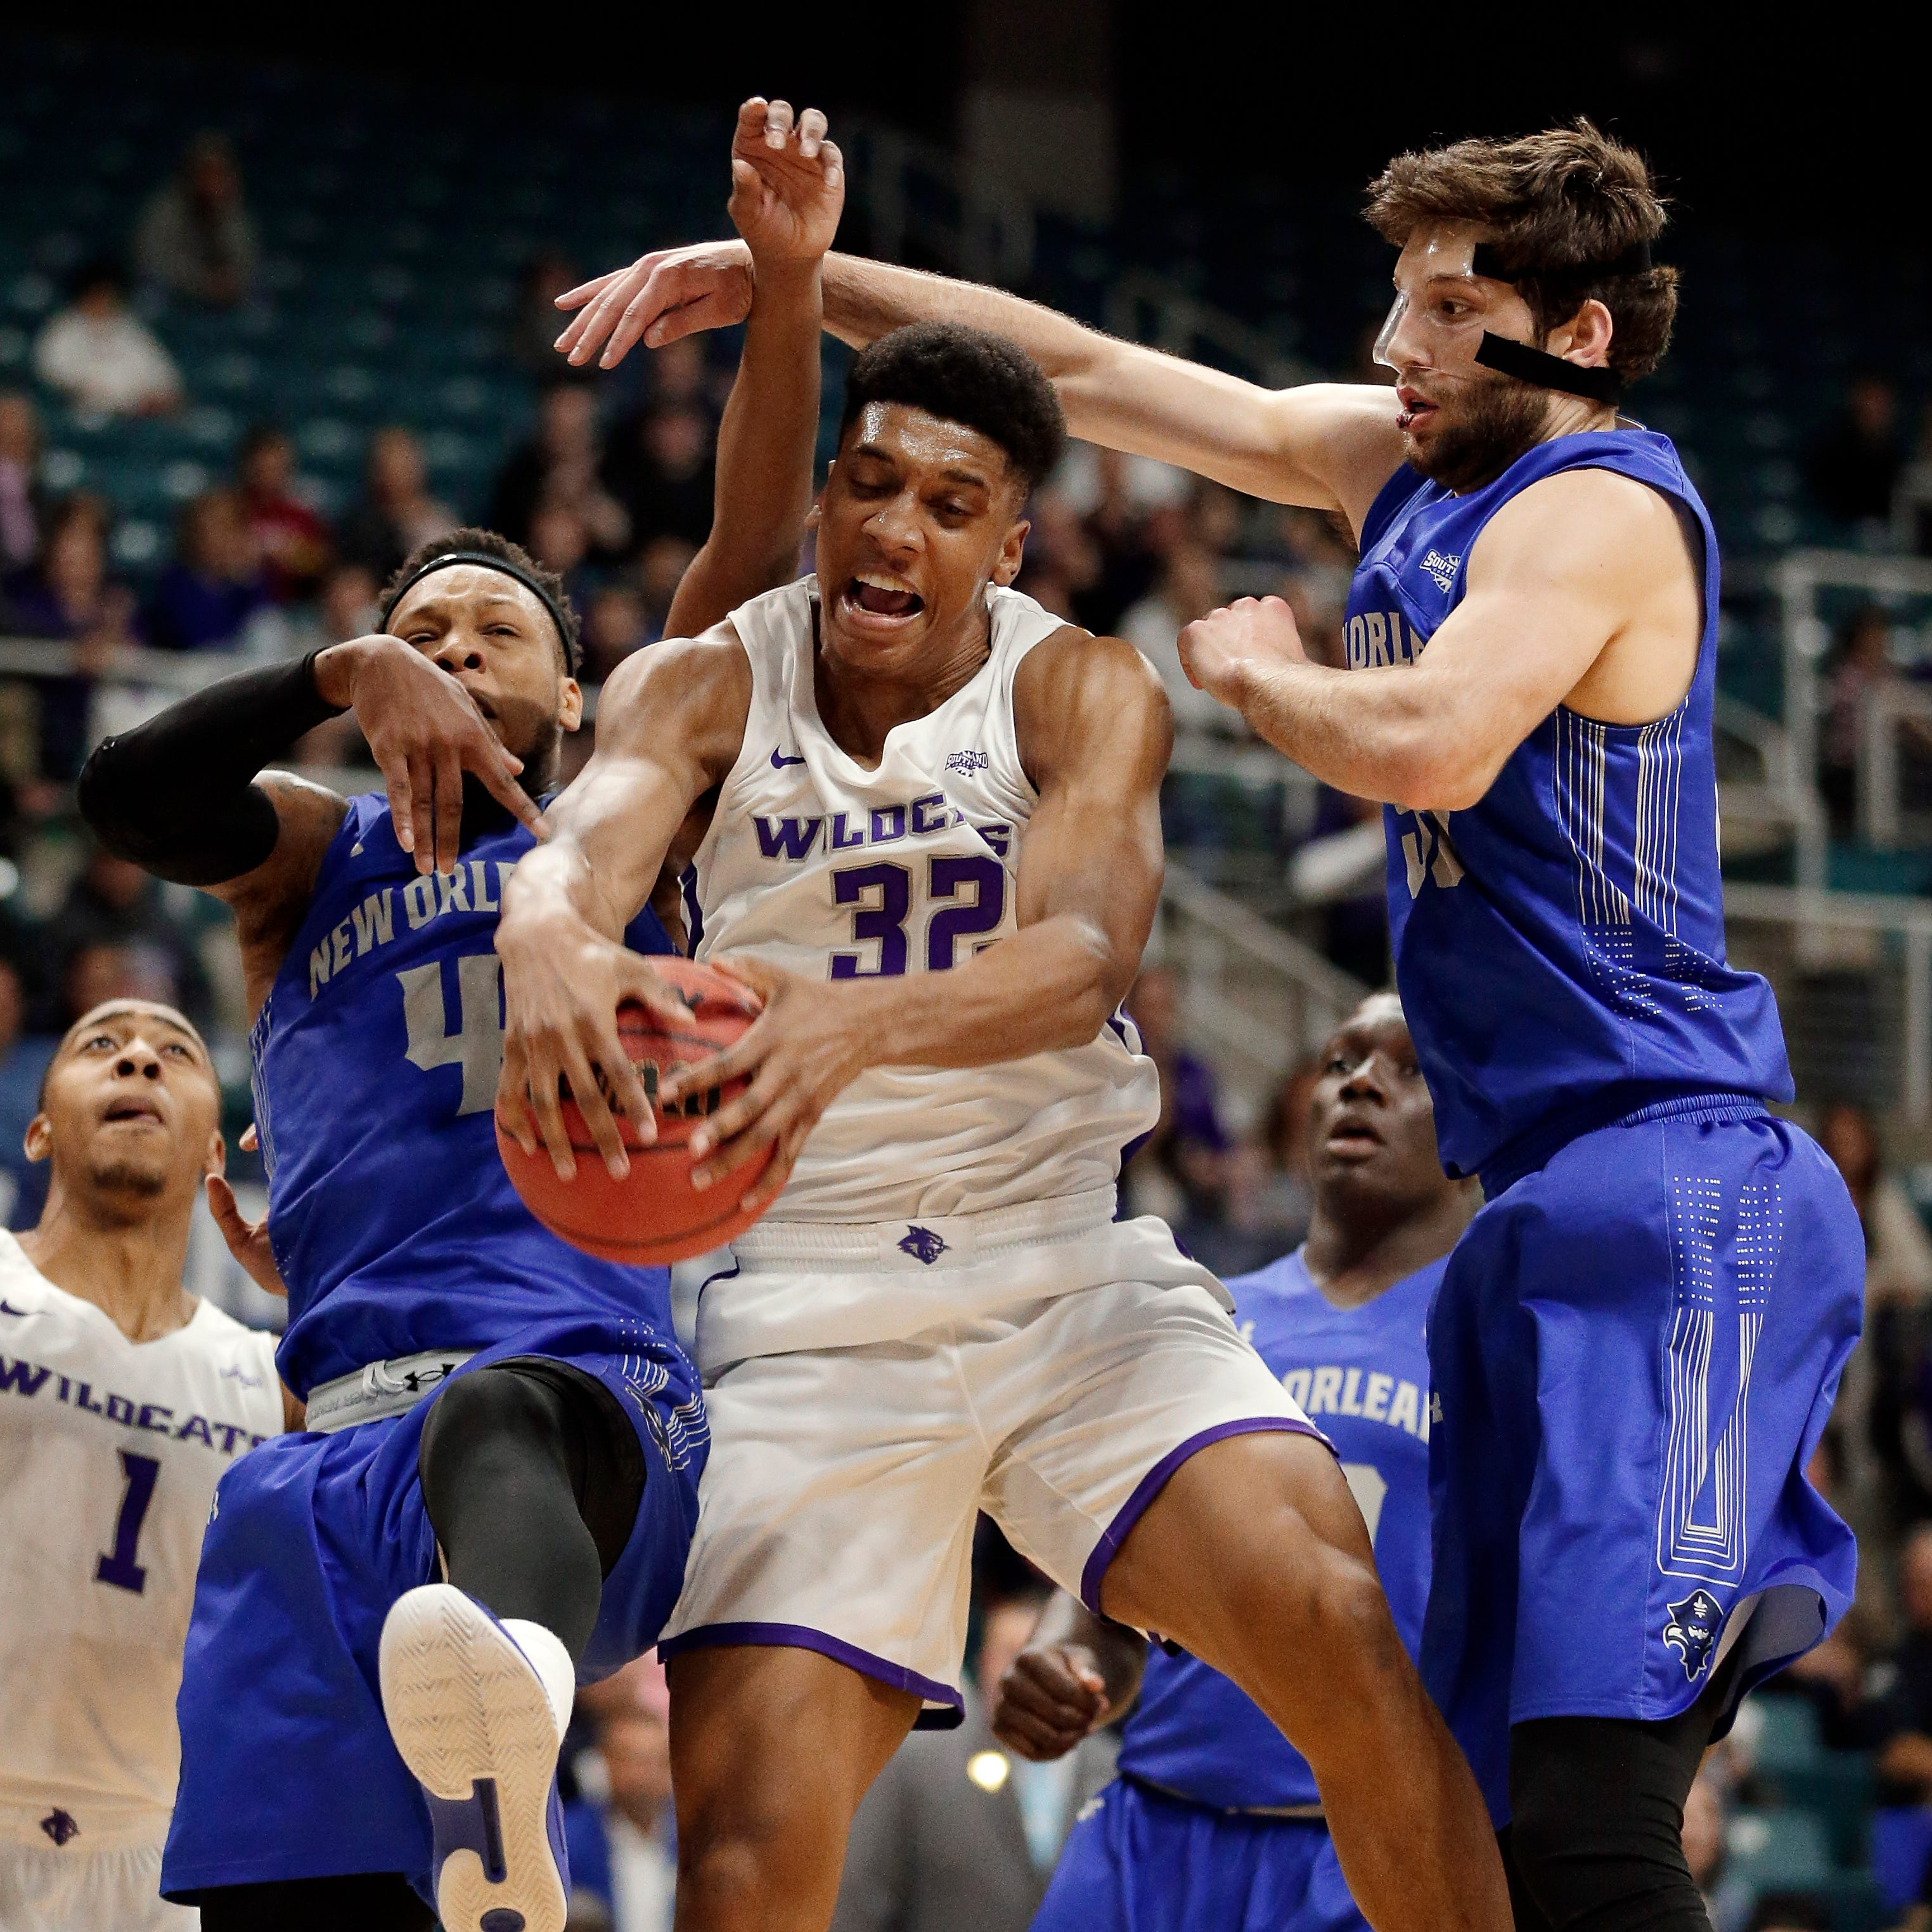 Abilene Christian is heading to the NCAA Tournament: Here's how people are responding